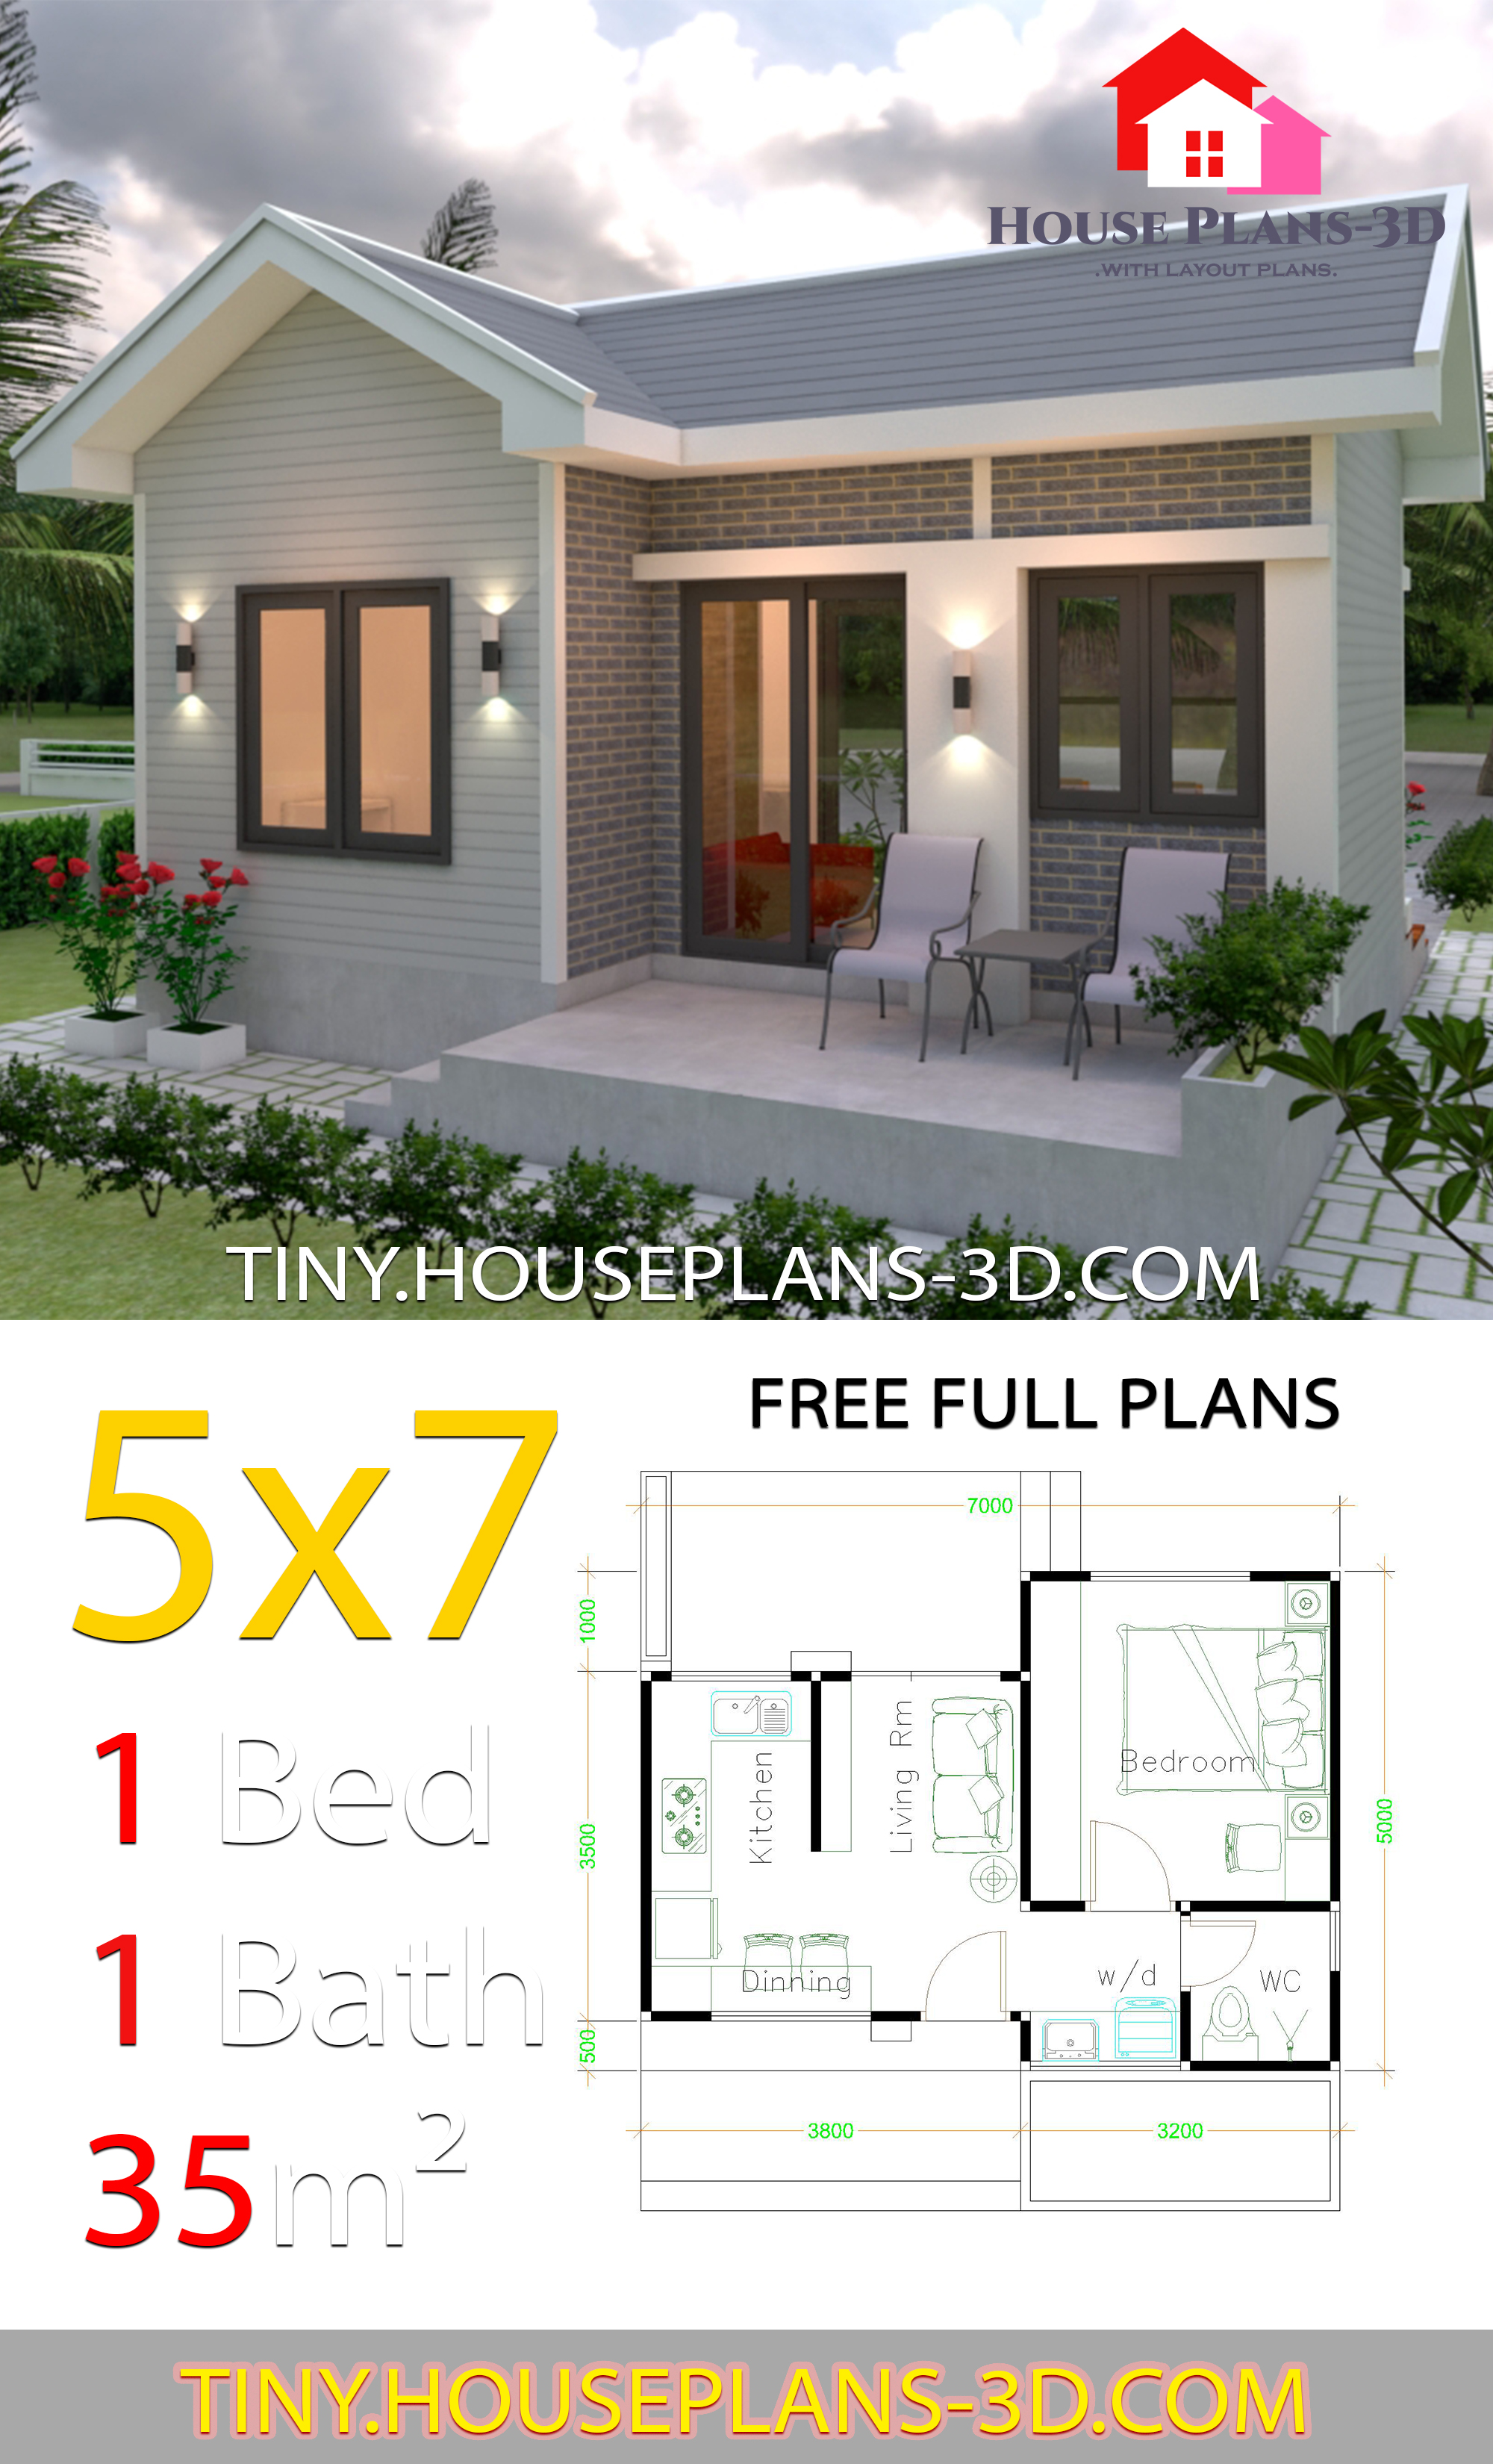 Small House Design Plans 5x7 with One Bedroom Gable Roof v5 - Get Small 1 Bedroom House Plan Design PNG